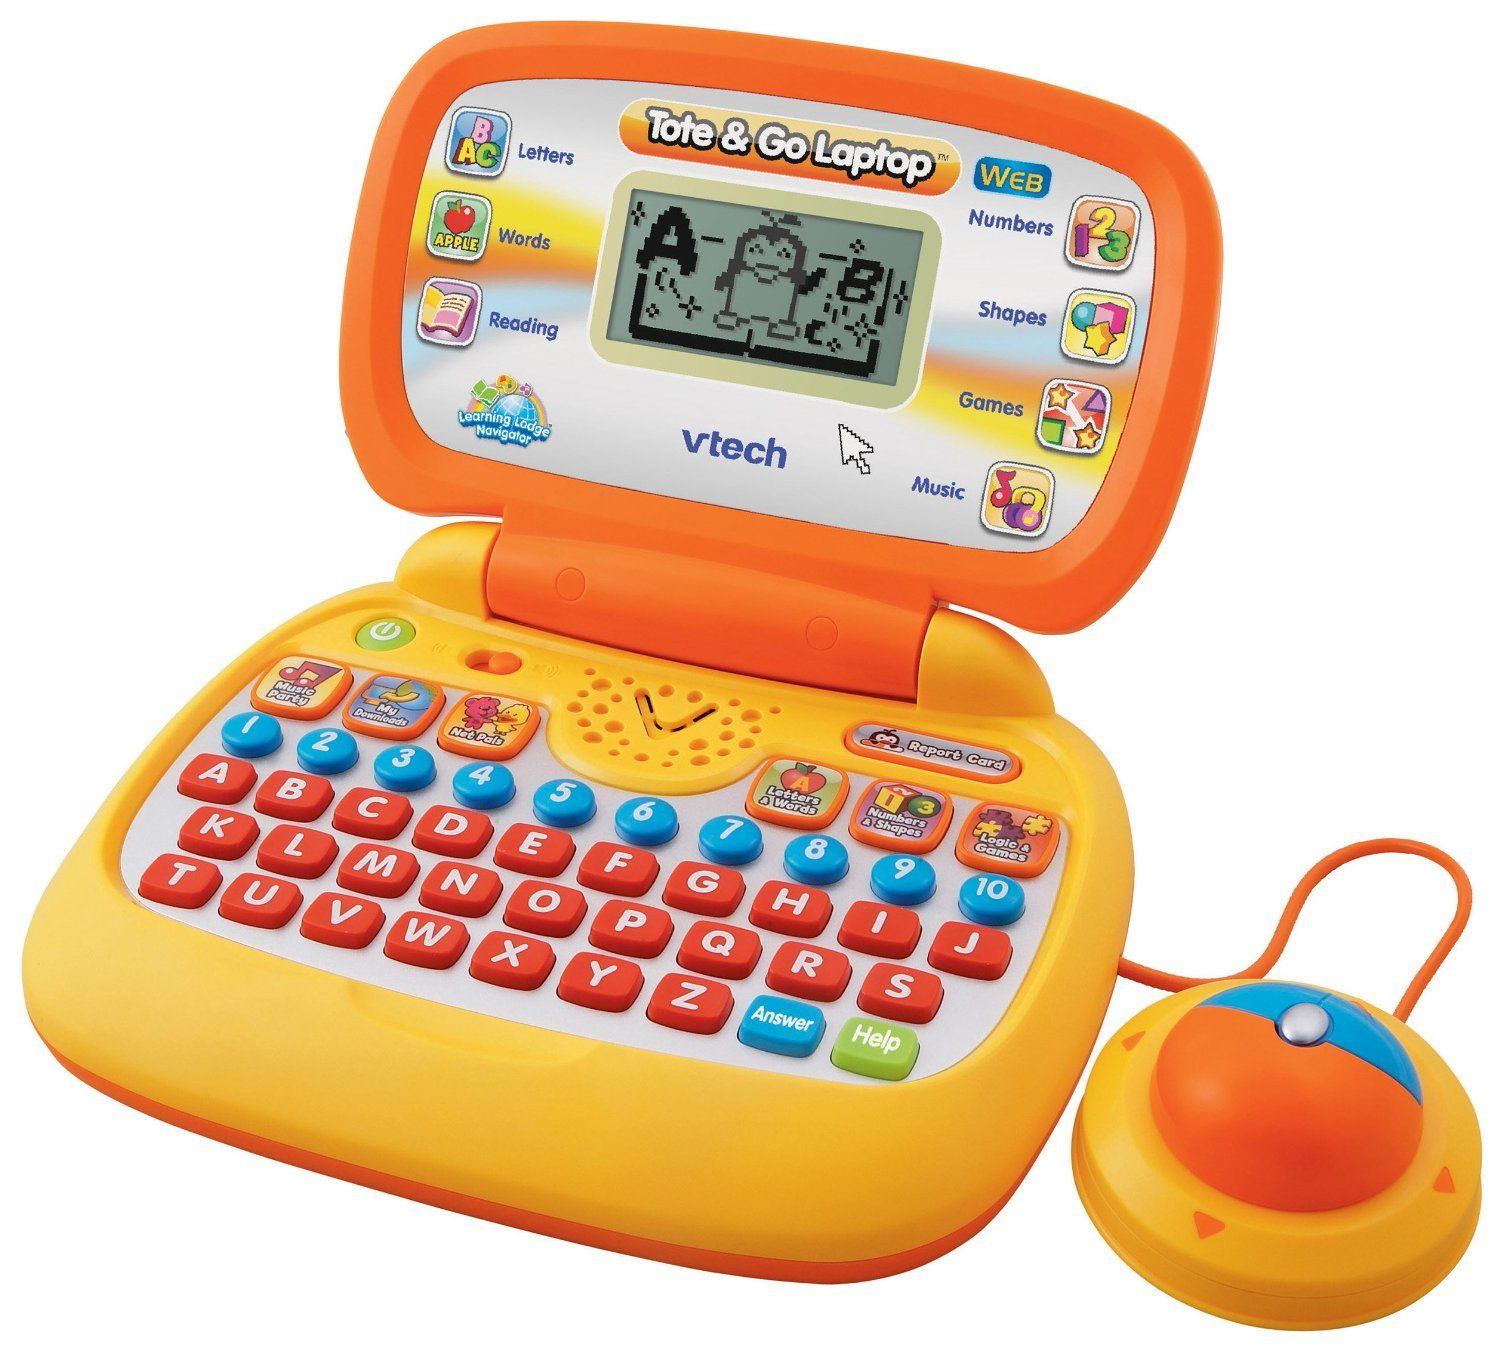 Coloring games for 2 year olds online - Vtech Tote Go Laptop With Web Connect Play Just Like The Grown Ups And Connect Online With The Vtech Tote Go Laptop Your Child Can Play One Of 20